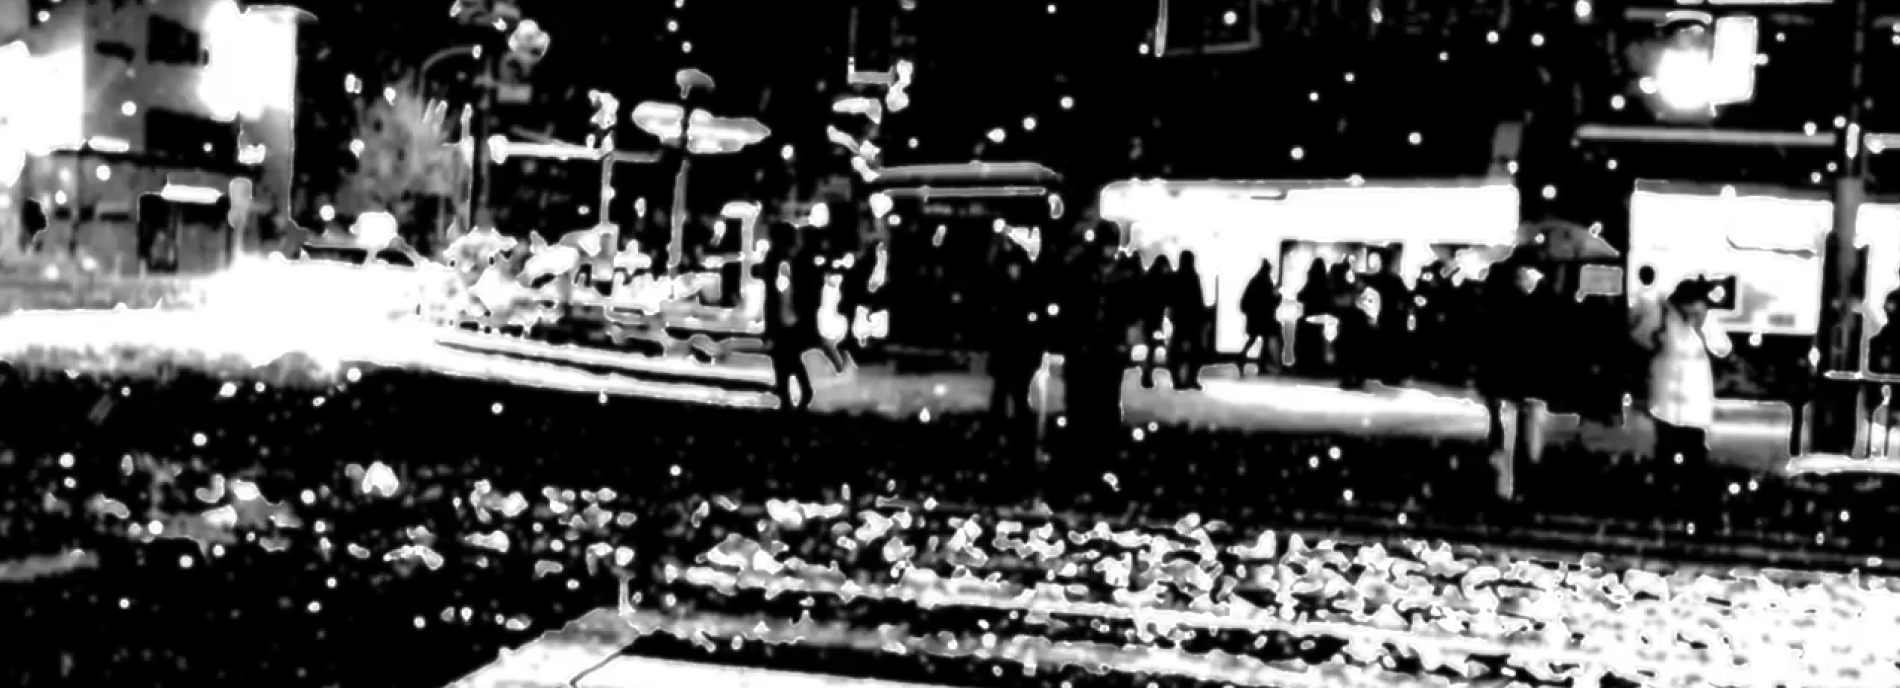 Black and white street scene with high contrast and fragmentation to show possible experience of person with autism.